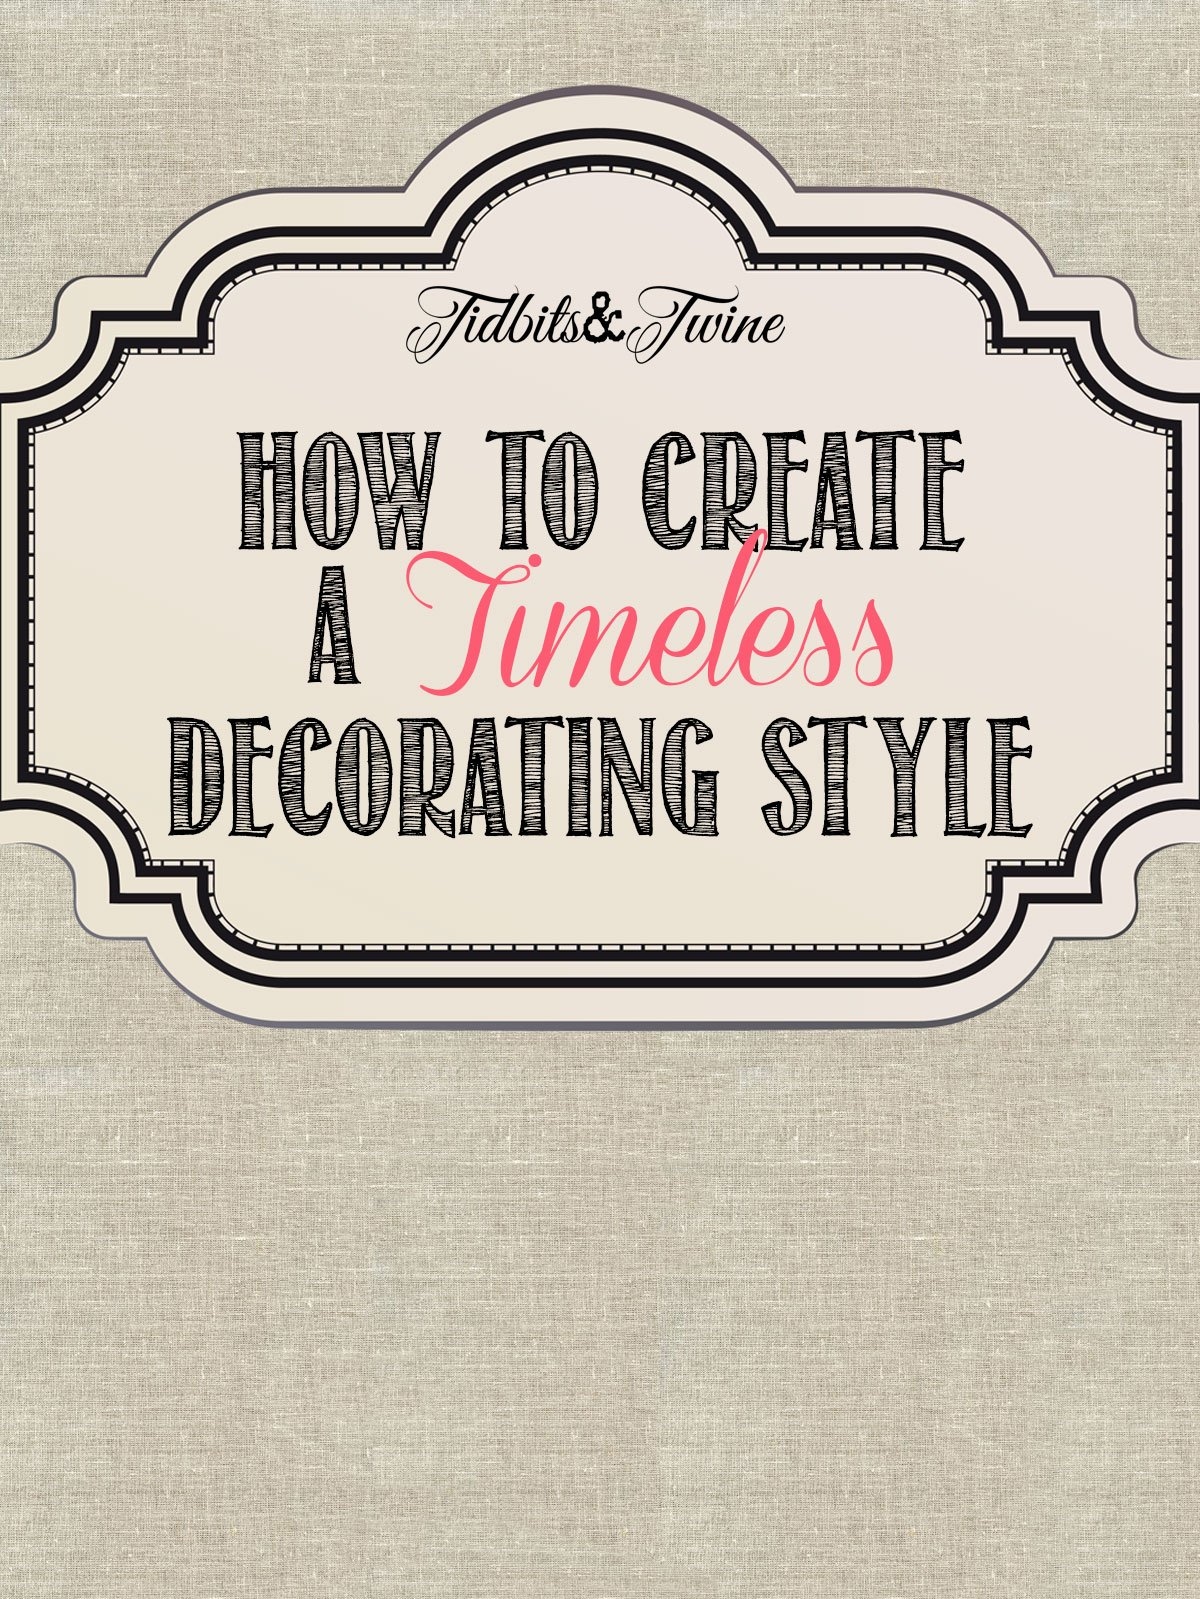 TIDBITS&TWINE---How-to-Create-a-Timeless-Decorating-Style